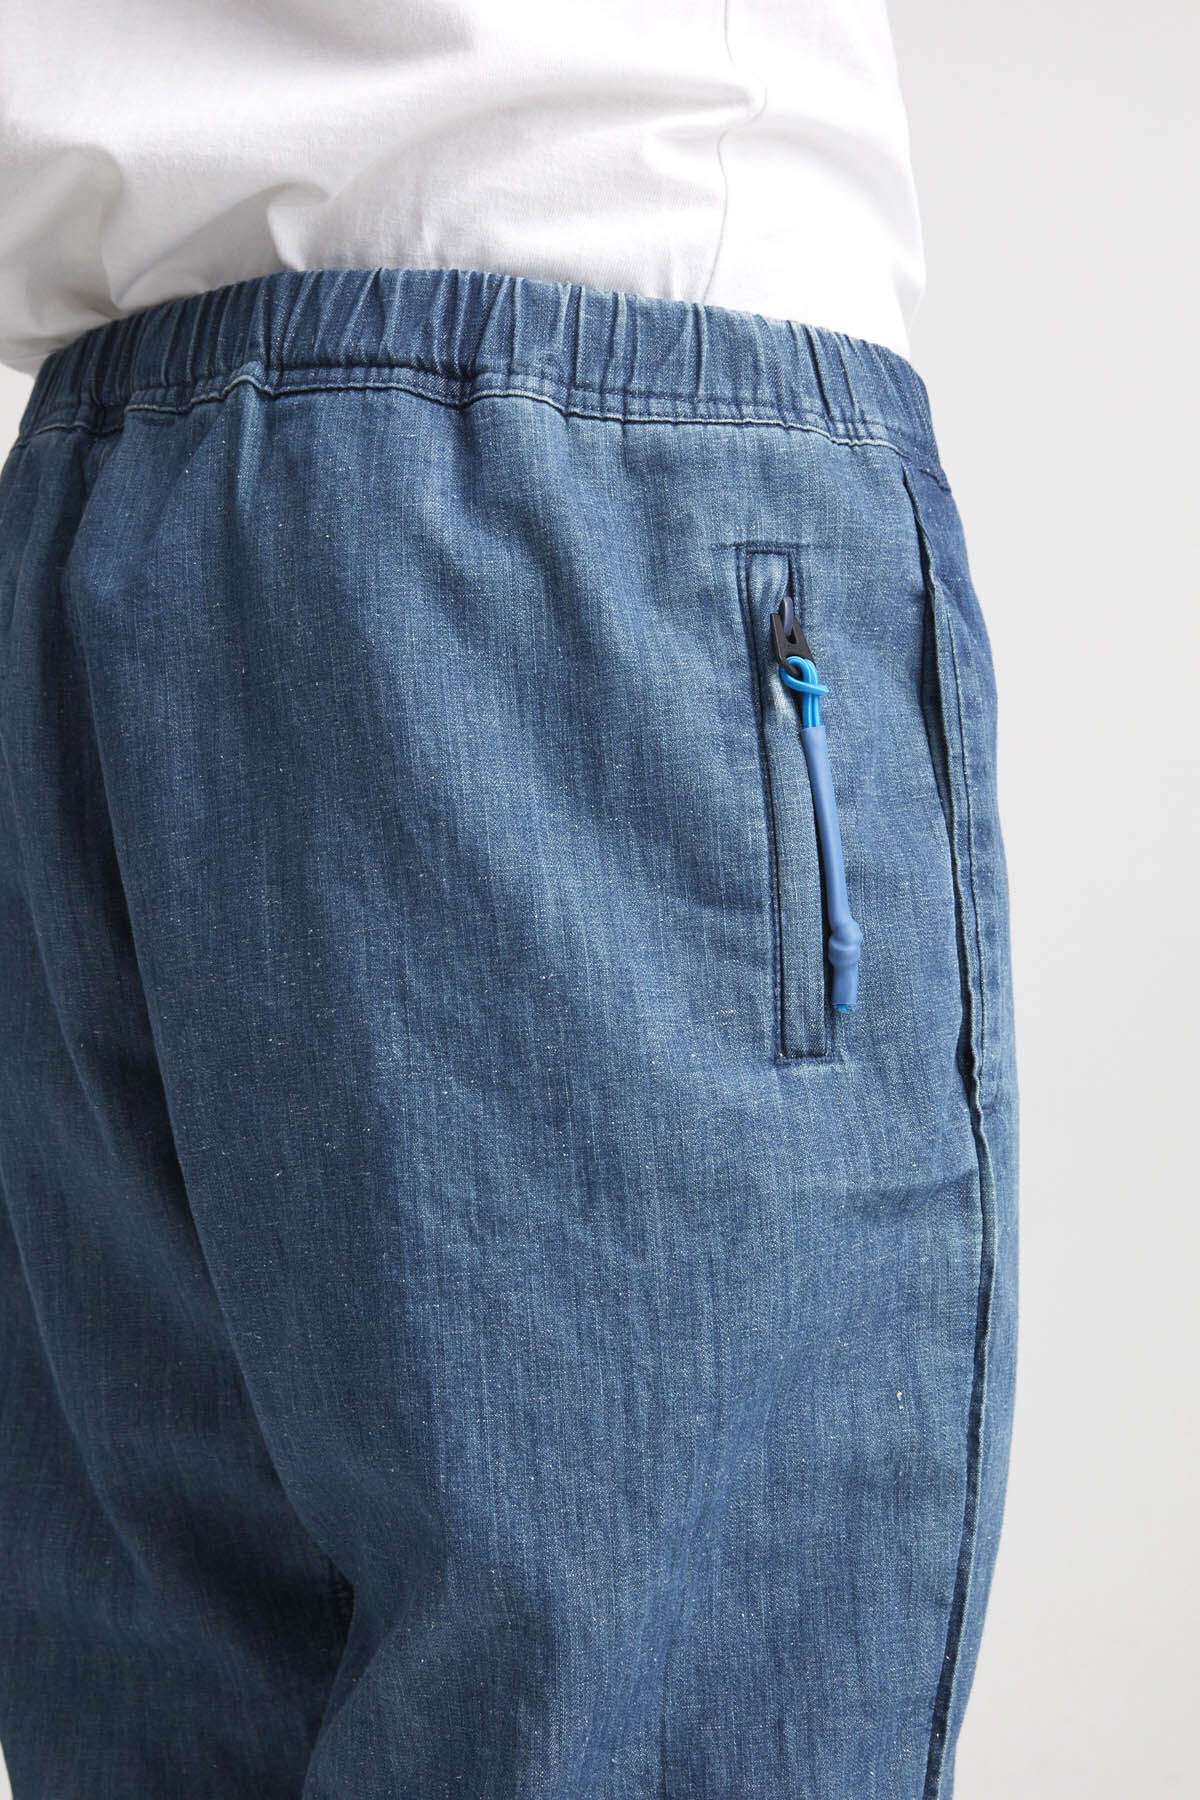 FRANCE PANT Organic Cotton & Hemp Denim - Relaxed Fit